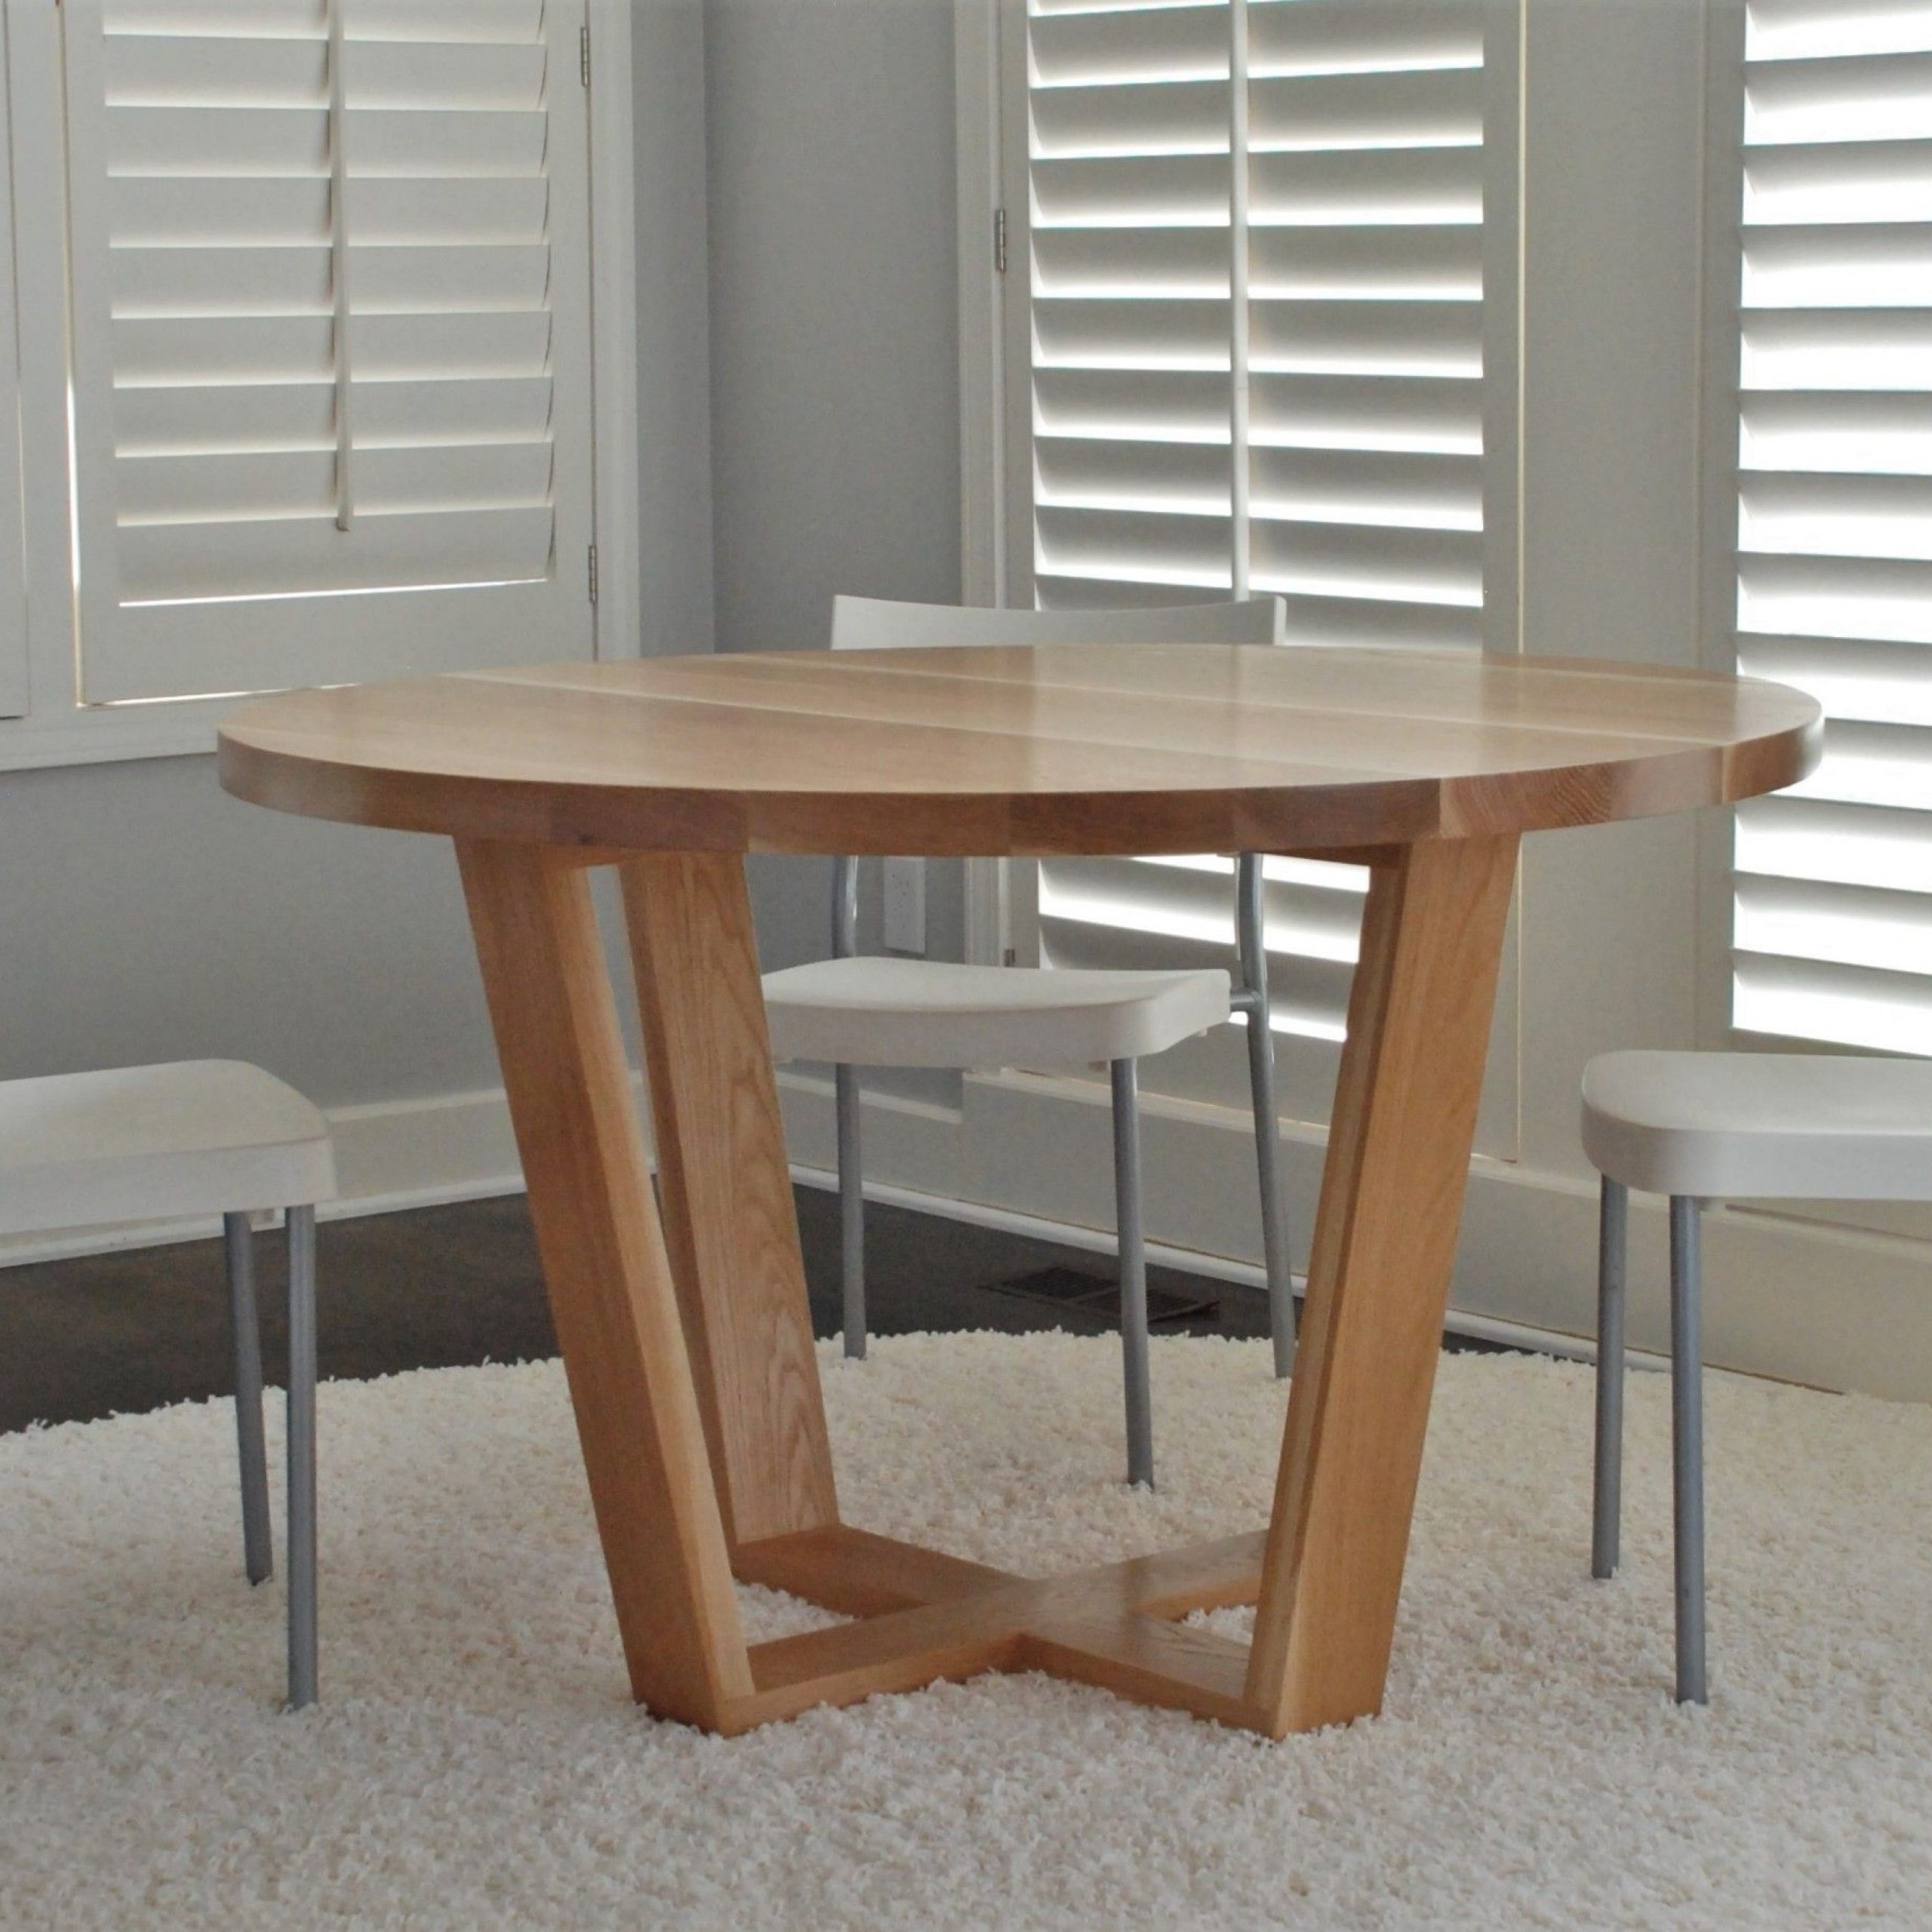 Best and Newest Hand Crafted Angled Leg Round Dining Tablebelak inside Solid Wood Circular Dining Tables White